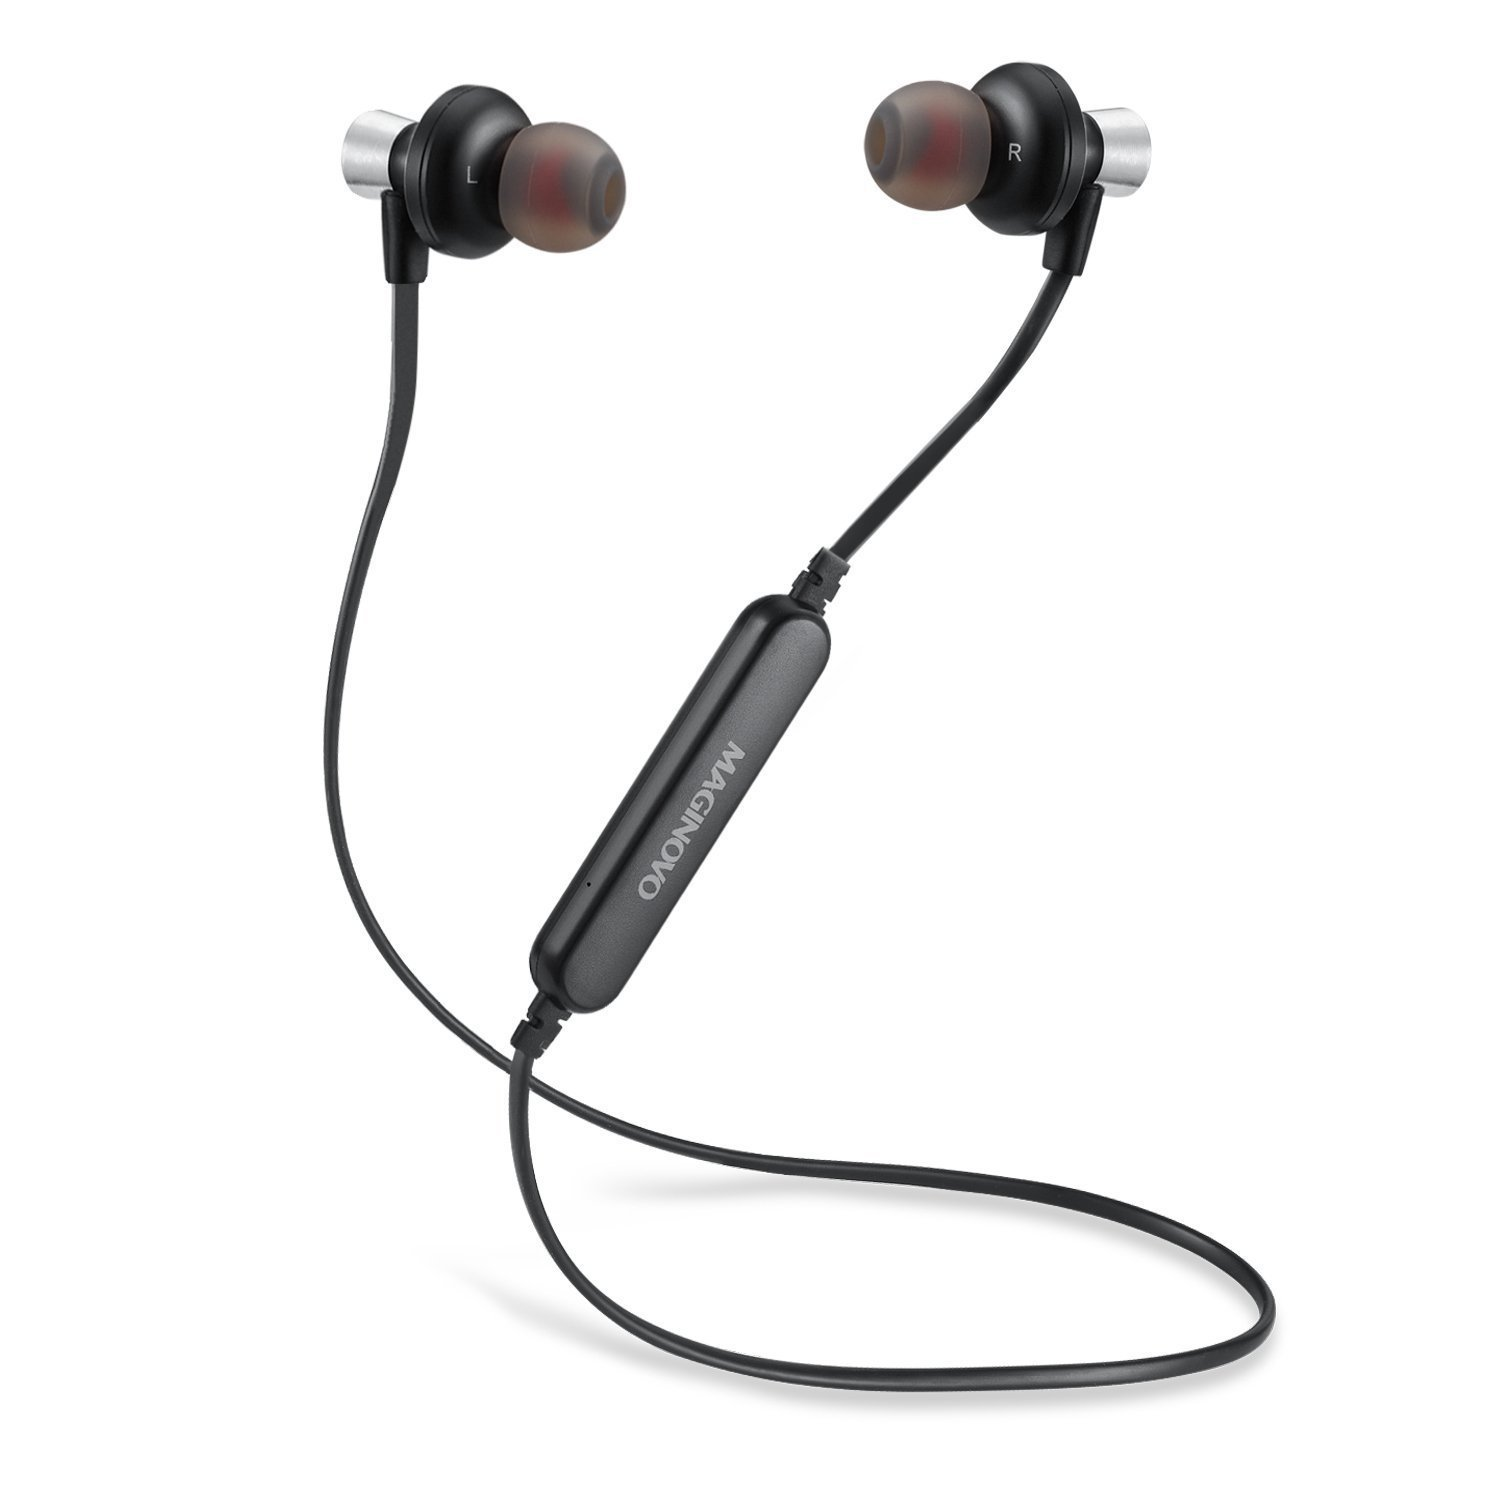 samsung bluetooth headphones. amazon.com: maginovo bluetooth headphones, wireless headset, stereo earphones for iphone: cell phones \u0026 accessories samsung headphones 5